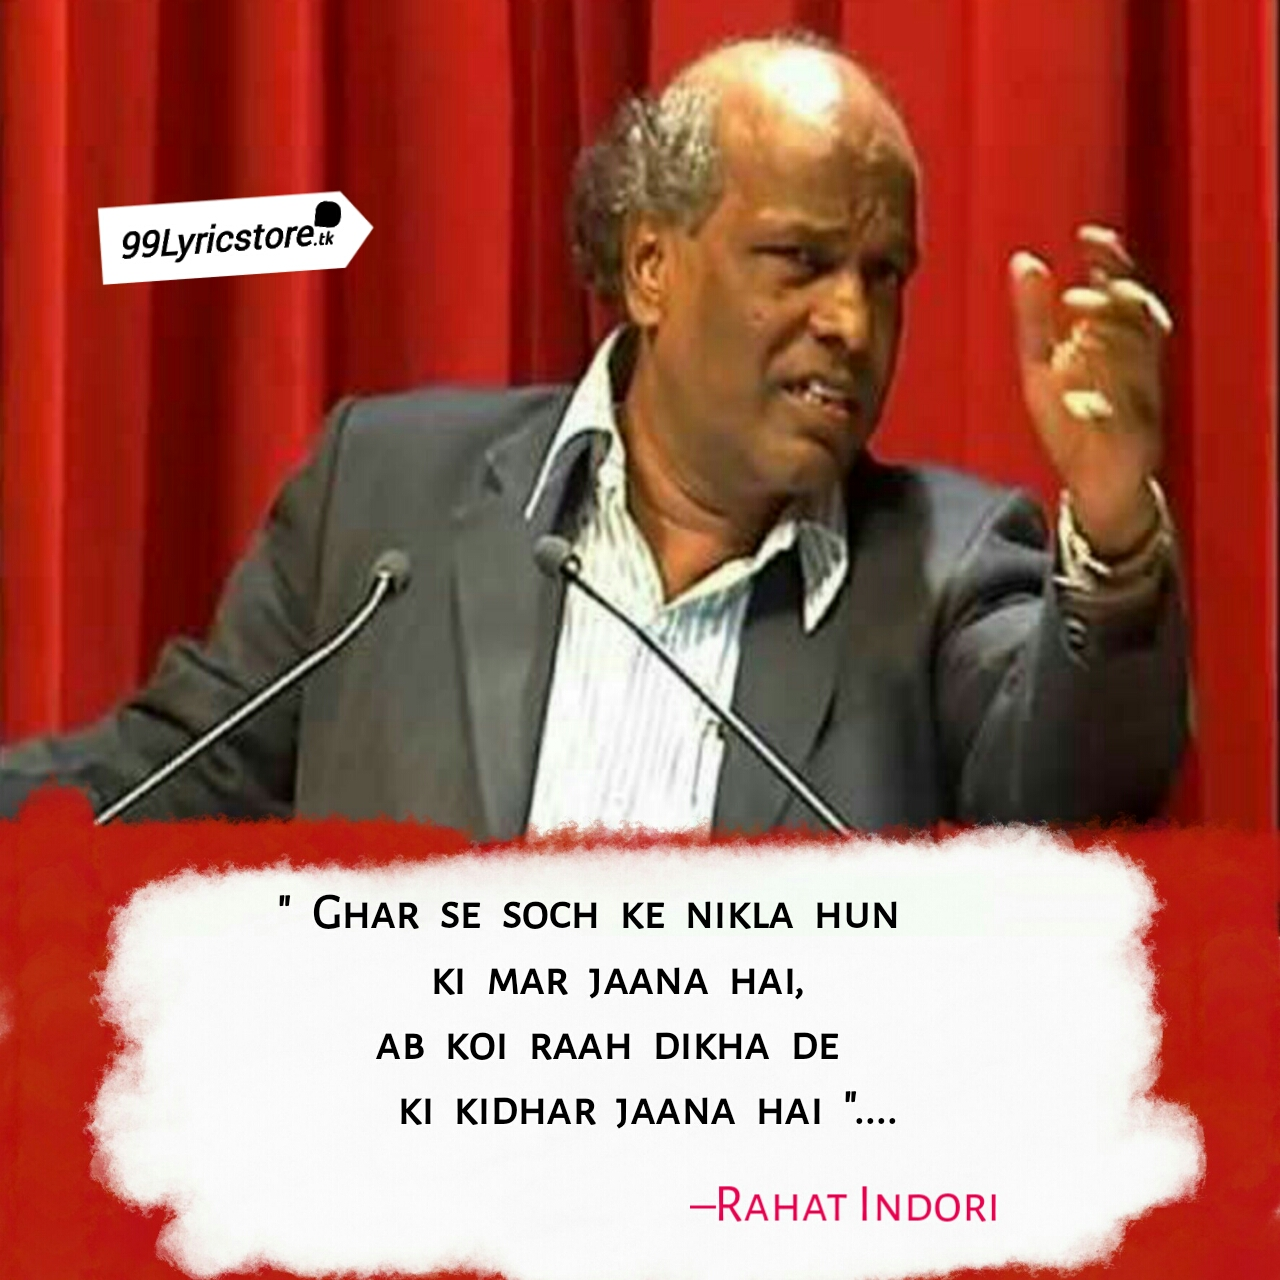 Ghar Se Soch Ke Nikla Hun Ki Mar Jaana Hai – Rahat Indori | Ghazal Poetry, Ghazals, Nasha Shayari, Rahat Indori, Rasta Shayari, Umeed Shayari, Zindagi Shayari, Rahat Indori. Rahat Indori All Quotes, Happy Quotes, Poem Quotes, True Quotes, Quotable Quotes. rahat indori ghazals, rahat indori kavita, rahat indori sad shayari, rahat indori latest shayari in hindi, Ghar se soch ke nikla hun ki mar jaana hai, ab koi raah dikha de ki kidhar jaana hai.